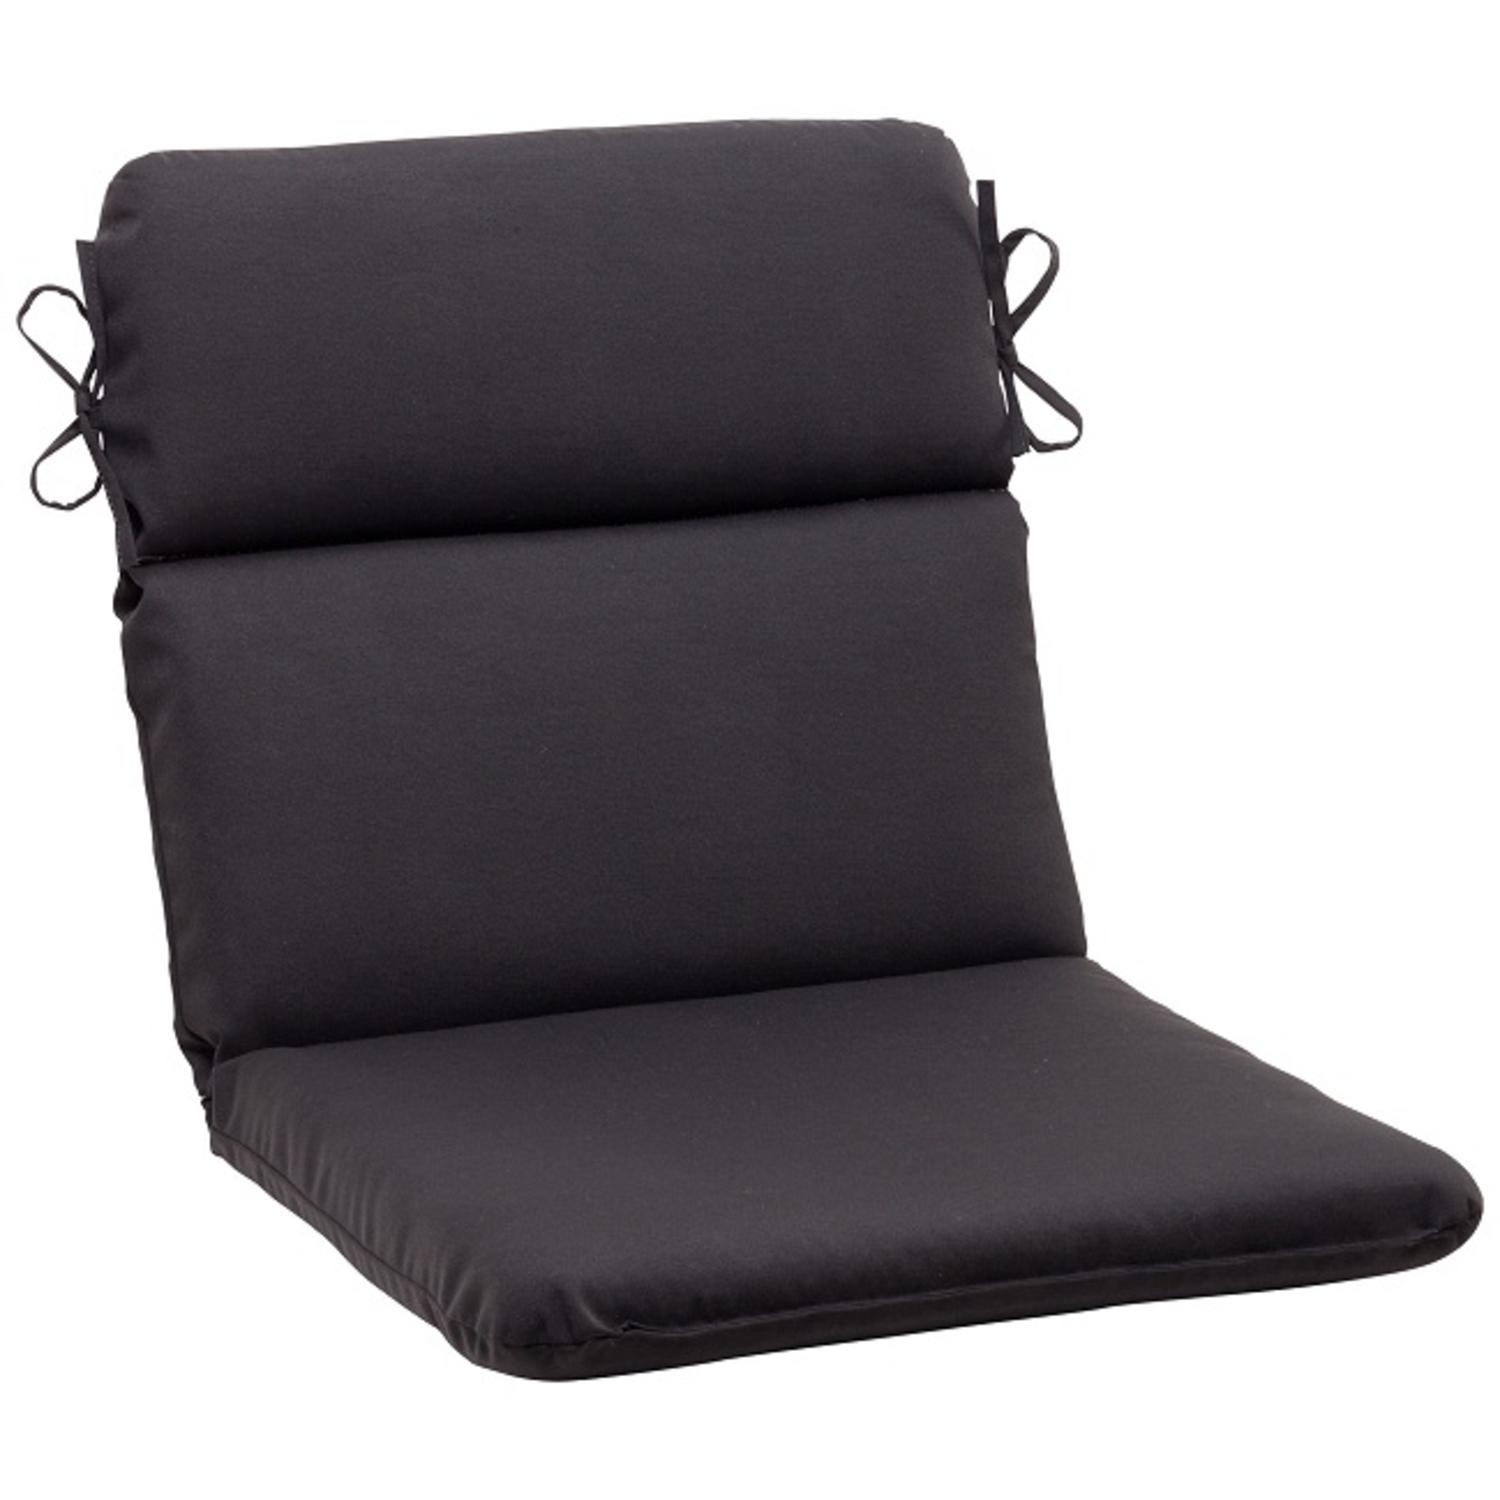 """40.5"""" Solid Dark Gray Outdoor Patio Rounded Chair Cushion with Ties"""